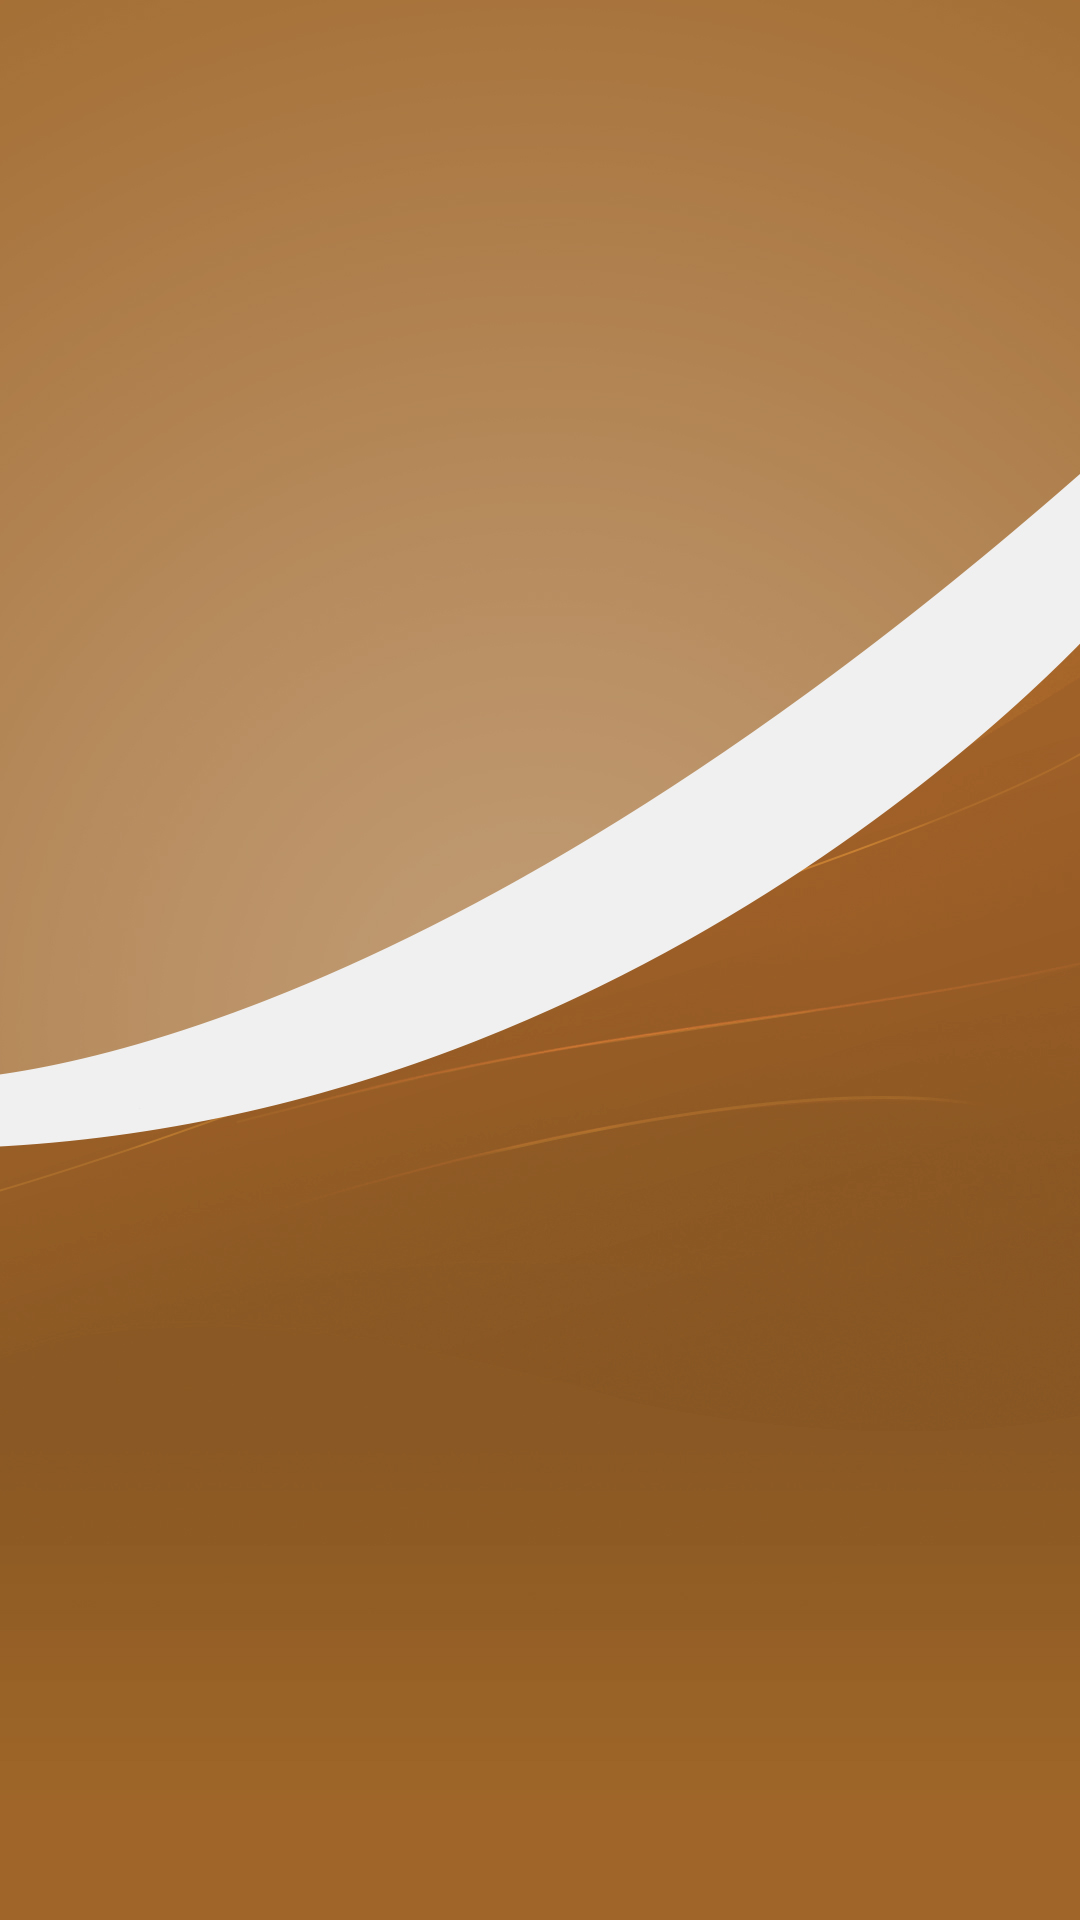 Xperia Z4v Orange-Browned wallpaper